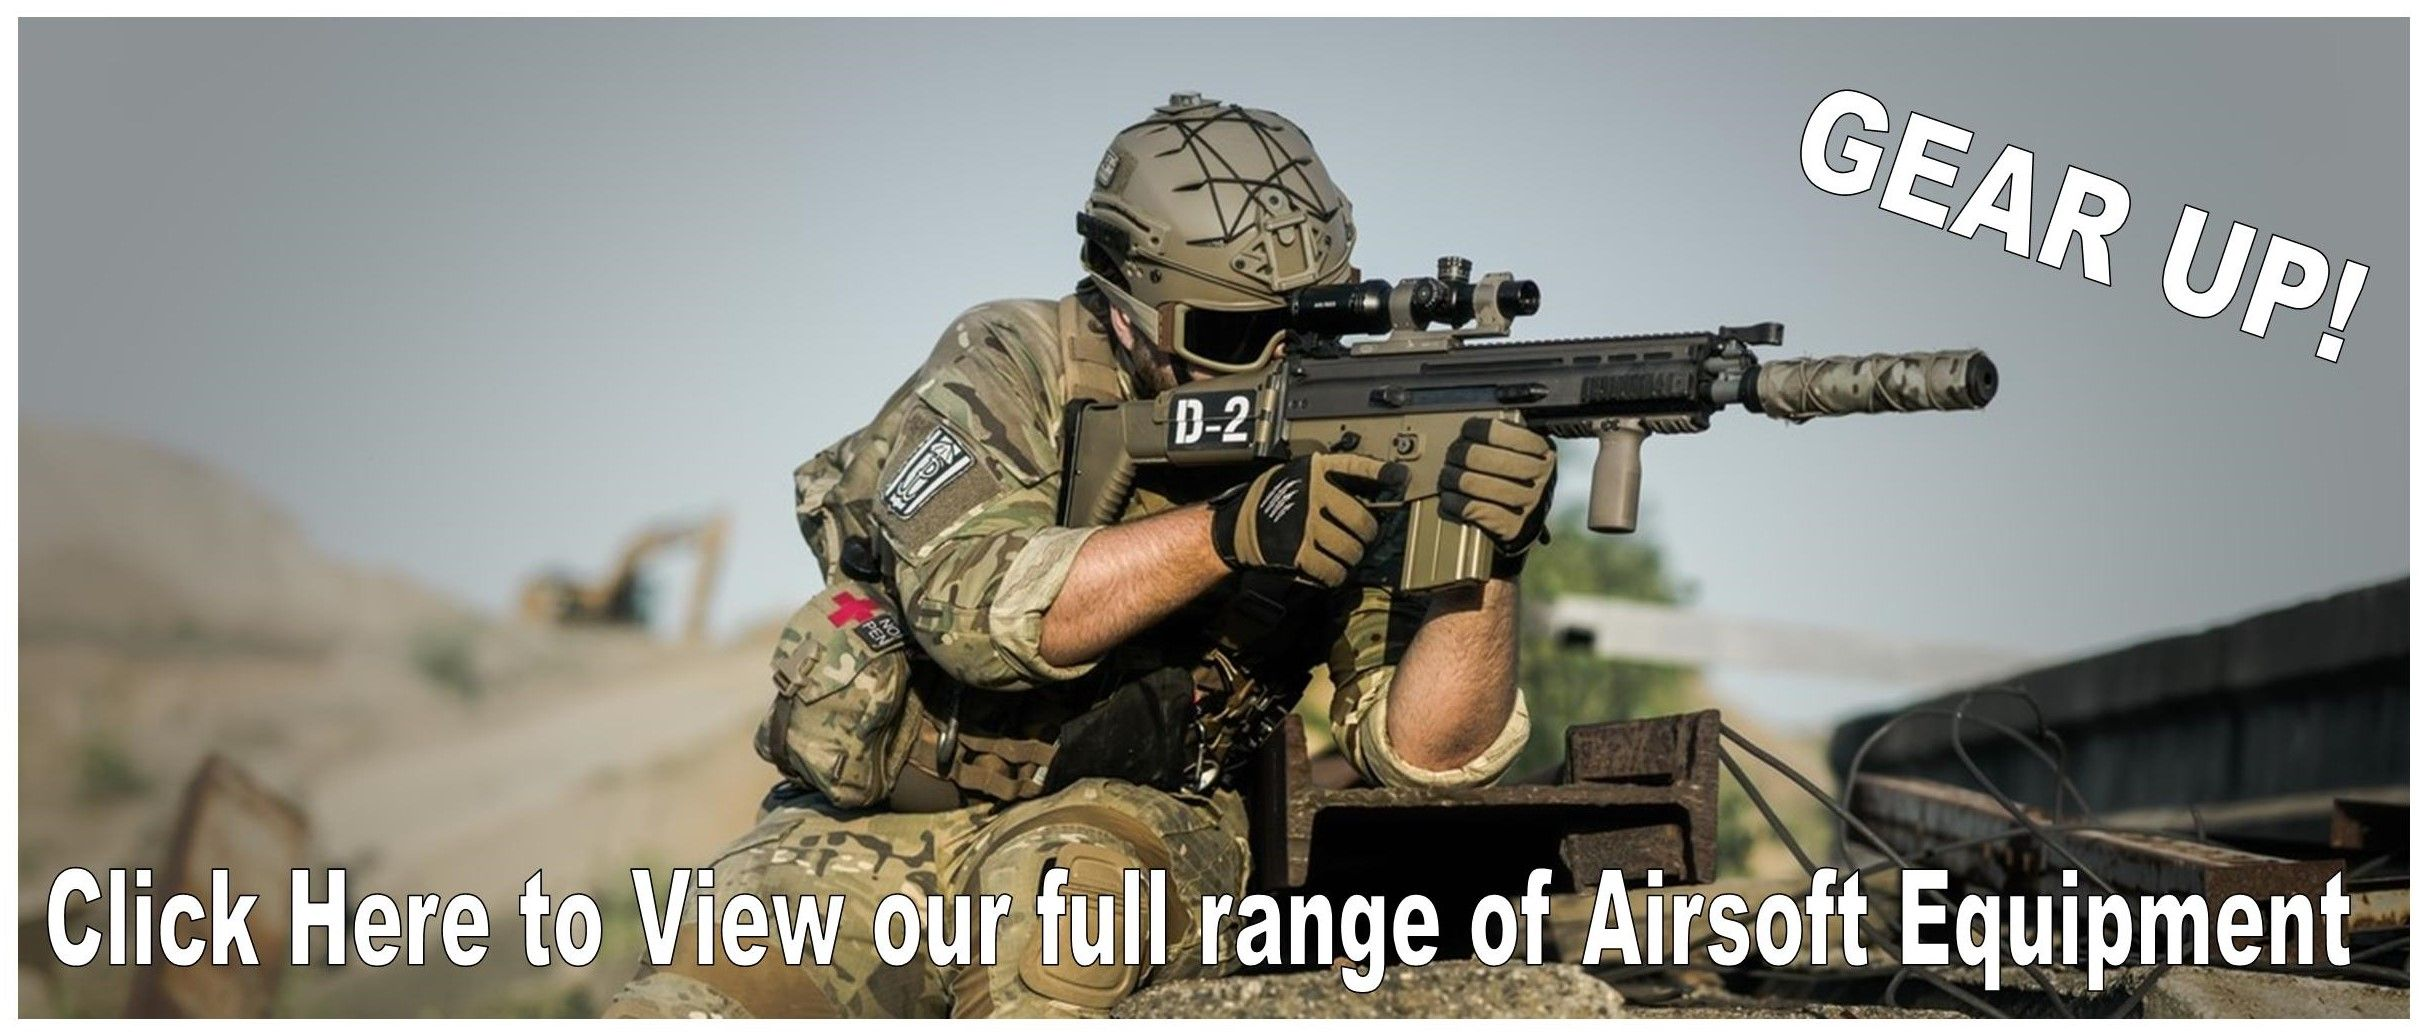 Airsoft Weapons and Accessories